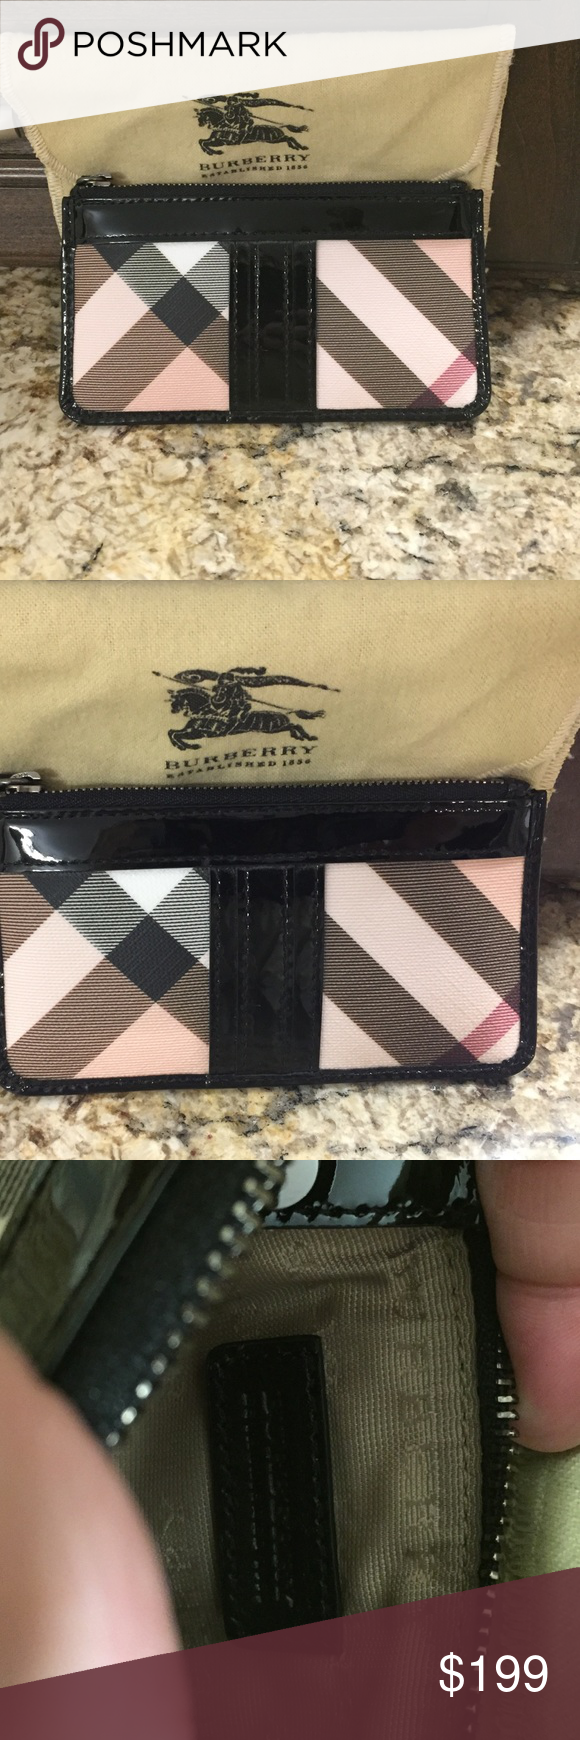 {Burberry} coin purse with dust bag, NWOT {Burberry} coin purse with dust bag, NWOT, never used, perfect condition Burberry Bags Clutches & Wristlets